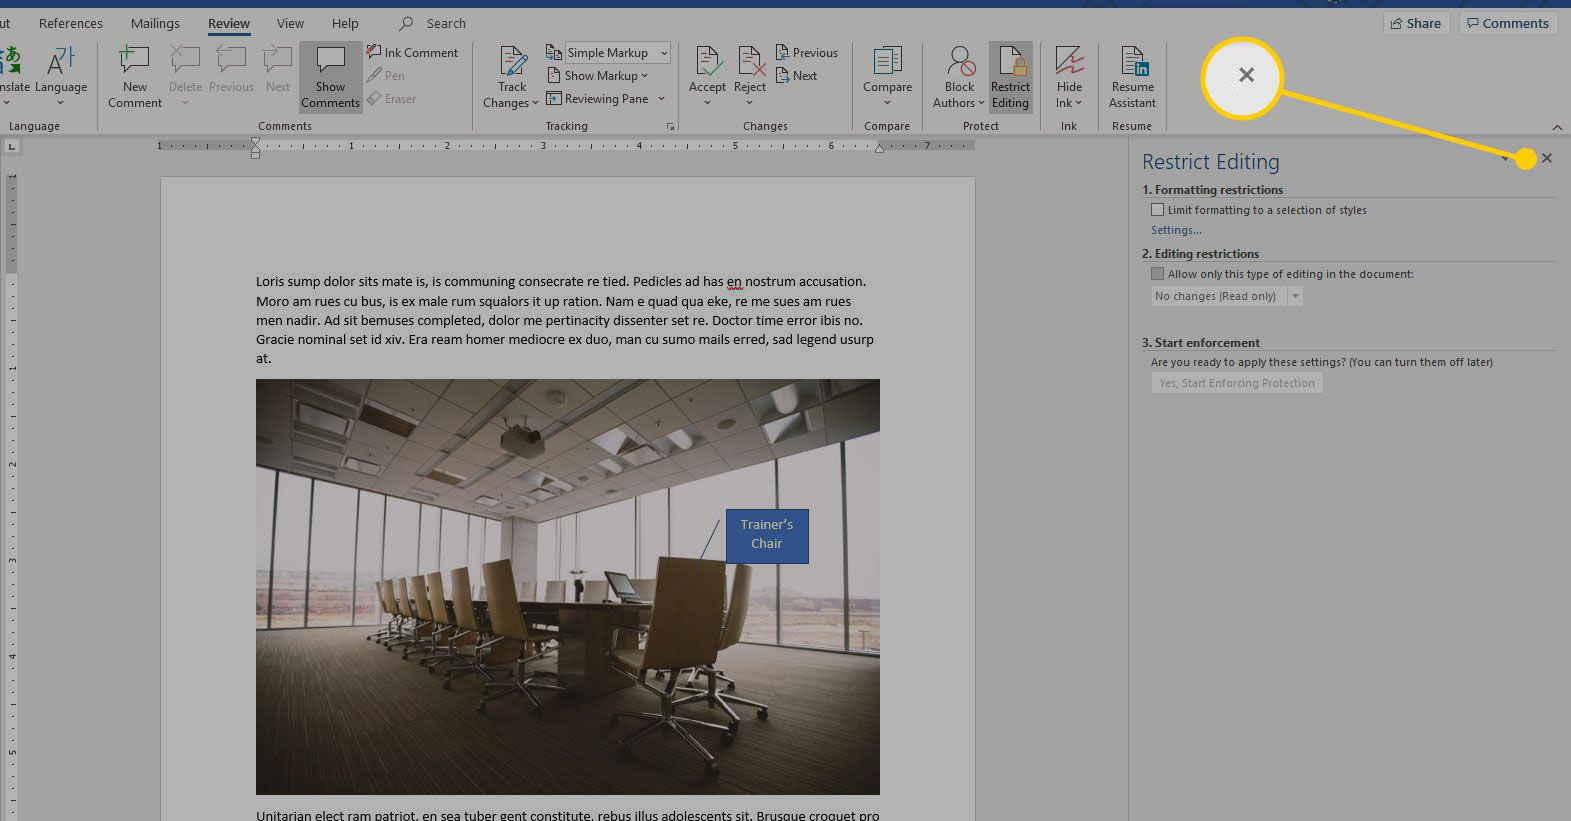 Restrict Editing menu in Word with the X highlighted